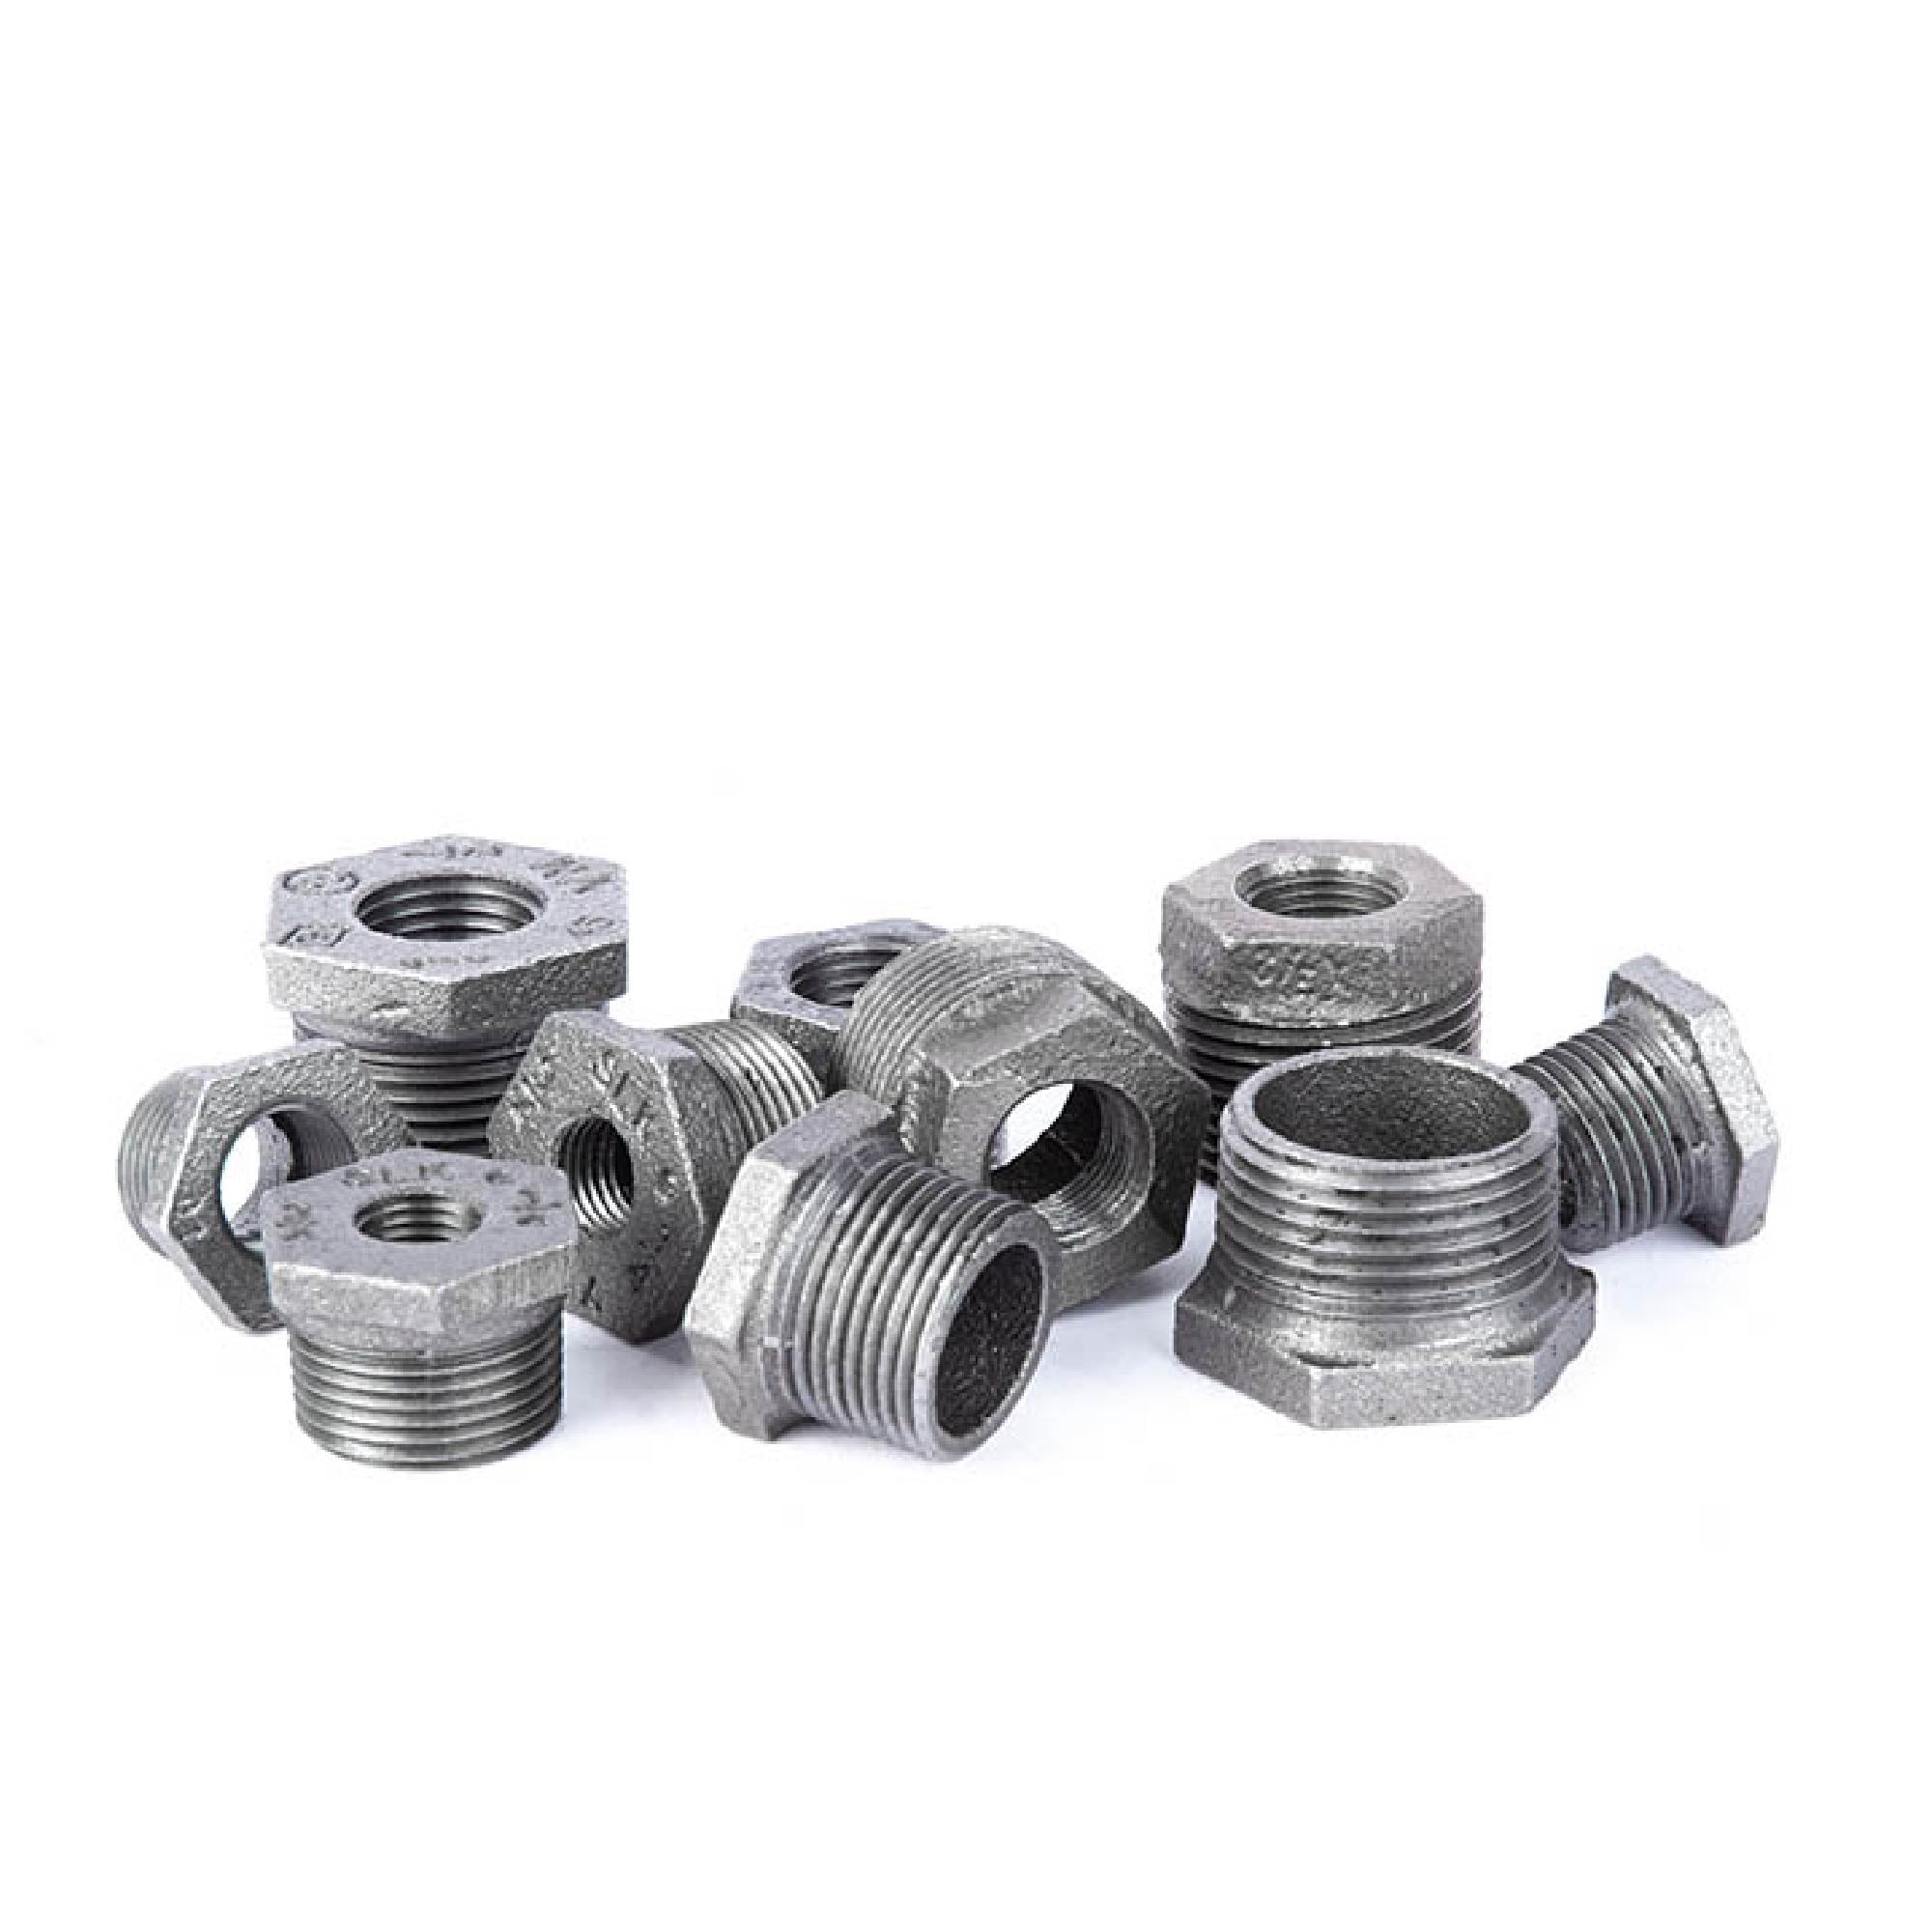 3/4 in. X 3/8 in. Bushing - Pipe Decor